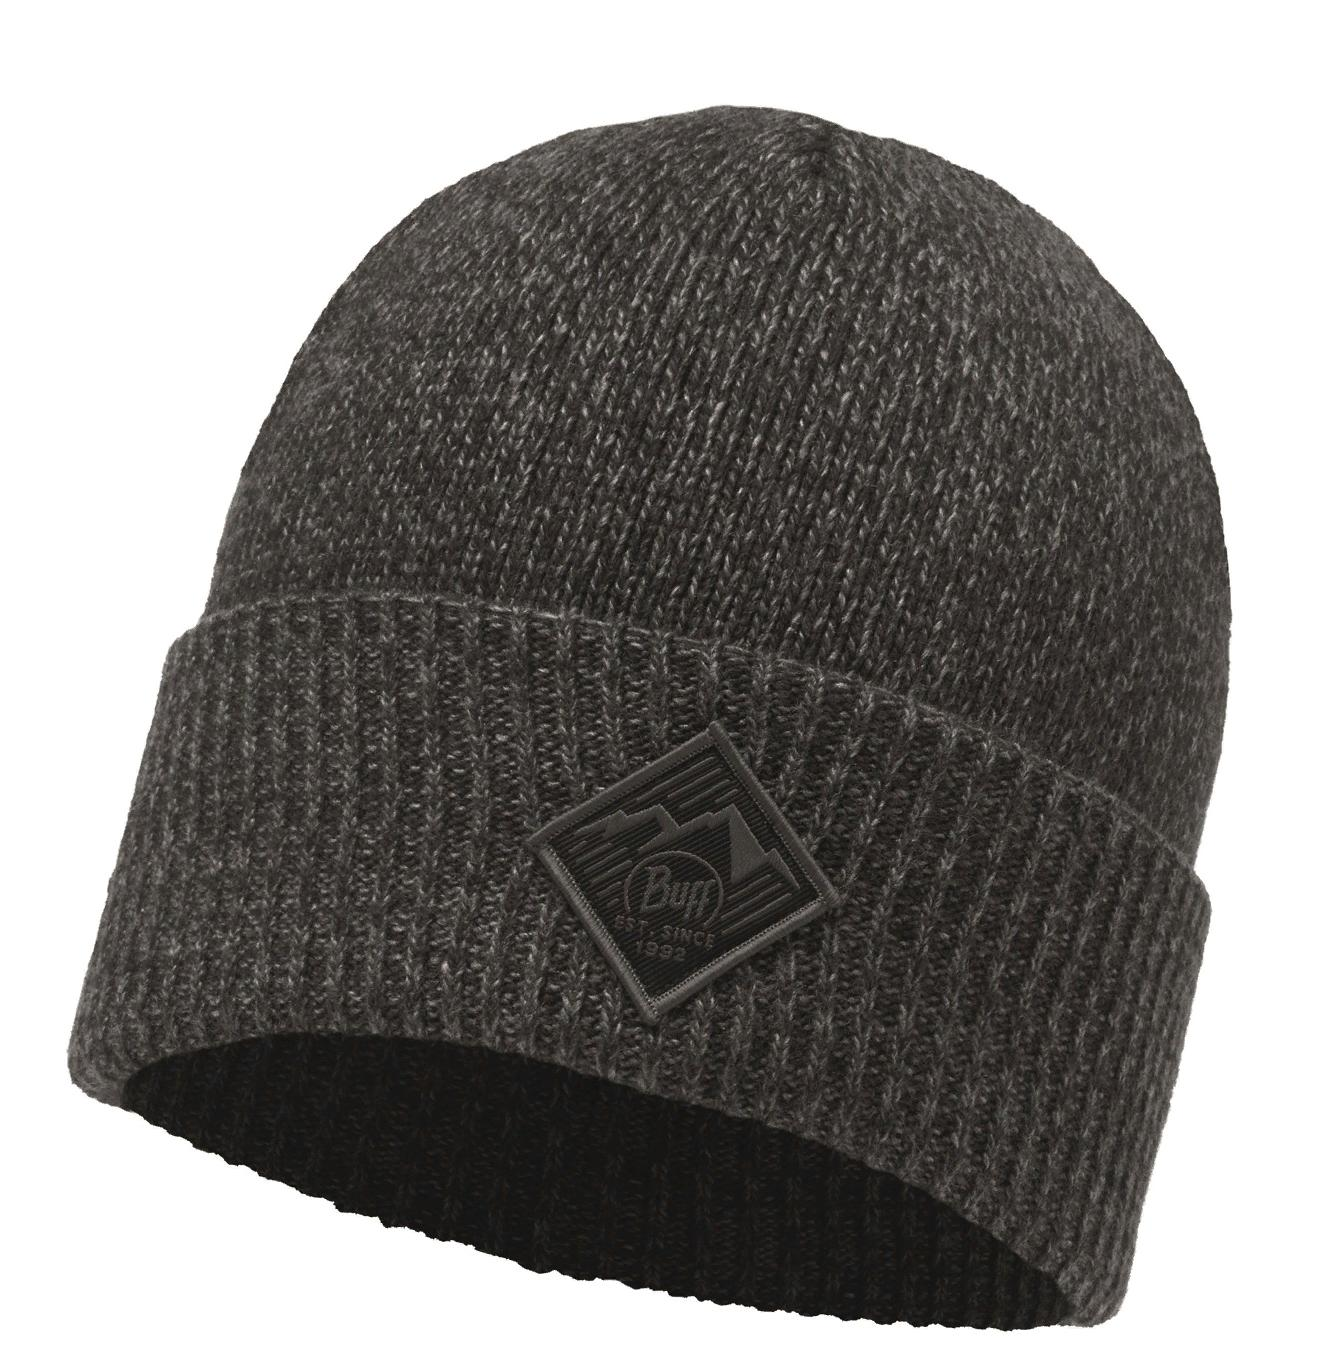 Шапка Buff Knitted Hat Pavel Grey